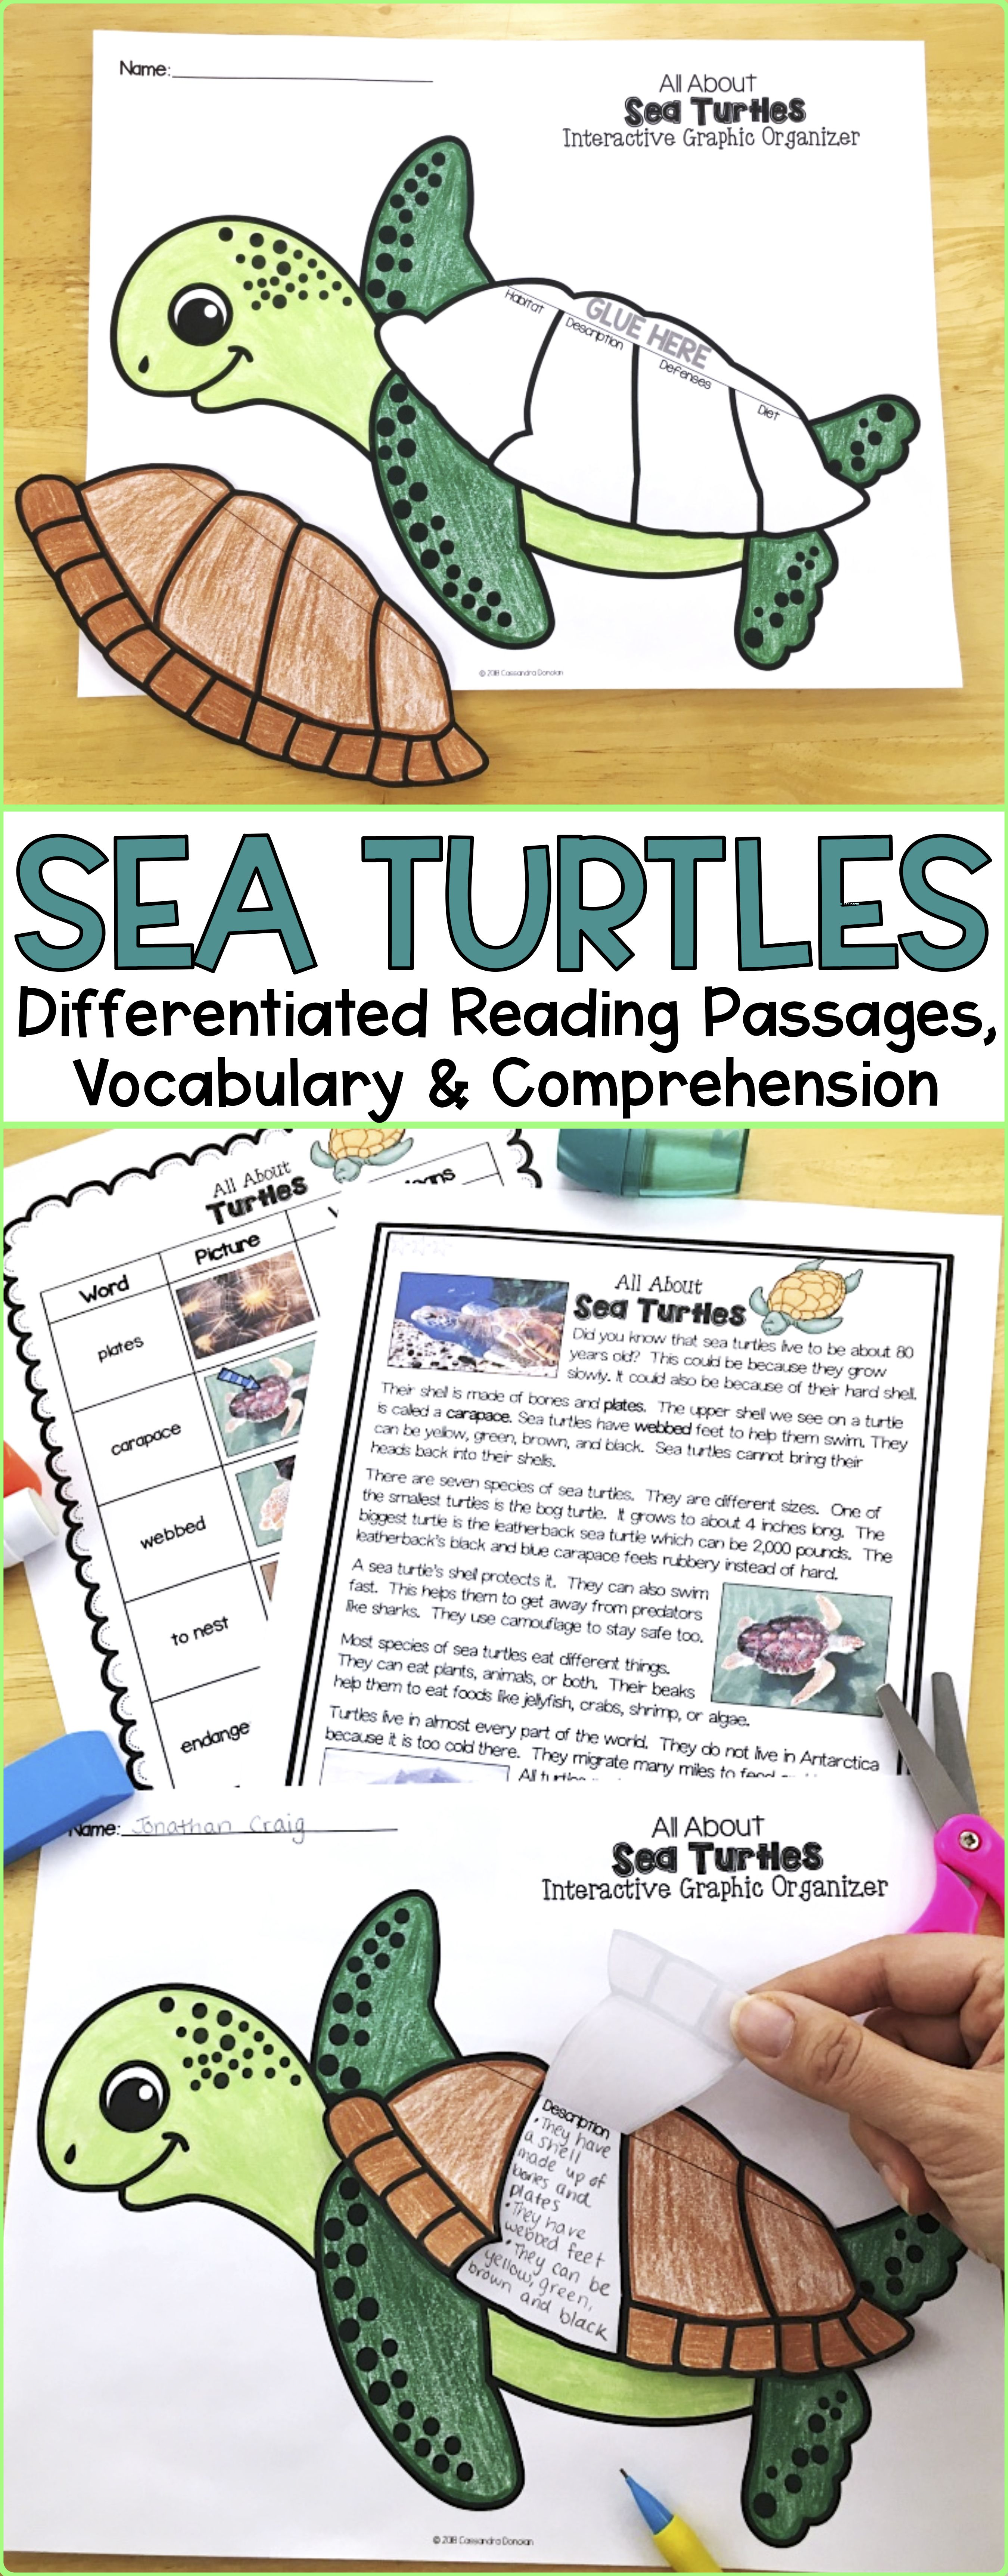 Ocean Animals Reading Sea Turtles Differentiated Passages